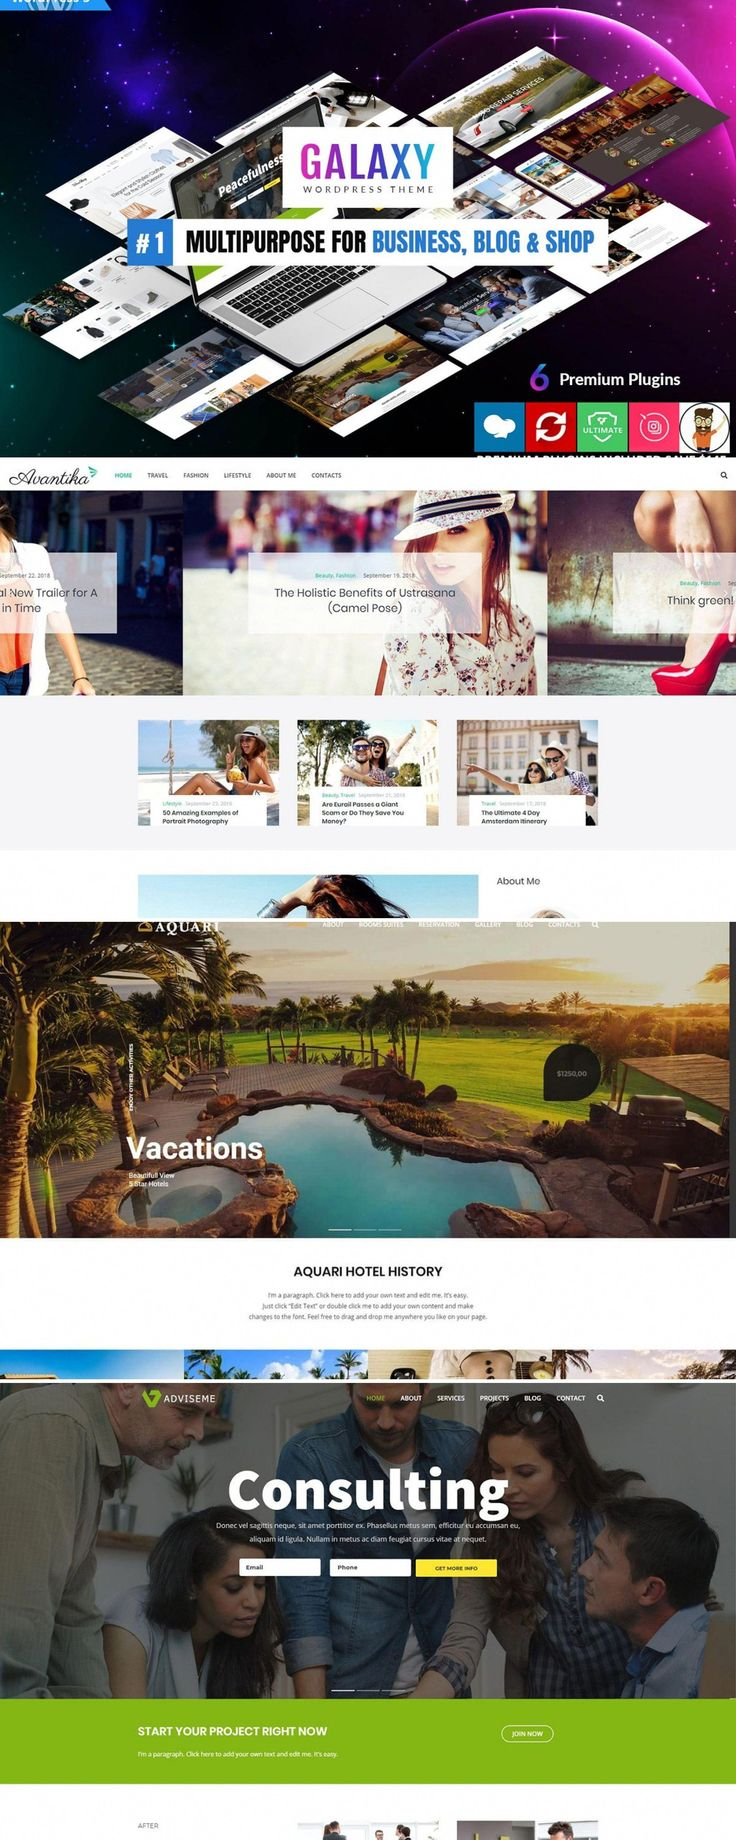 The Galaxy Is Full Of Different Pre Built Websites So You Can Easily Import Any Demo Website Within Seconds At 1 Cli Freelance Web Design Wordpress Theme Theme